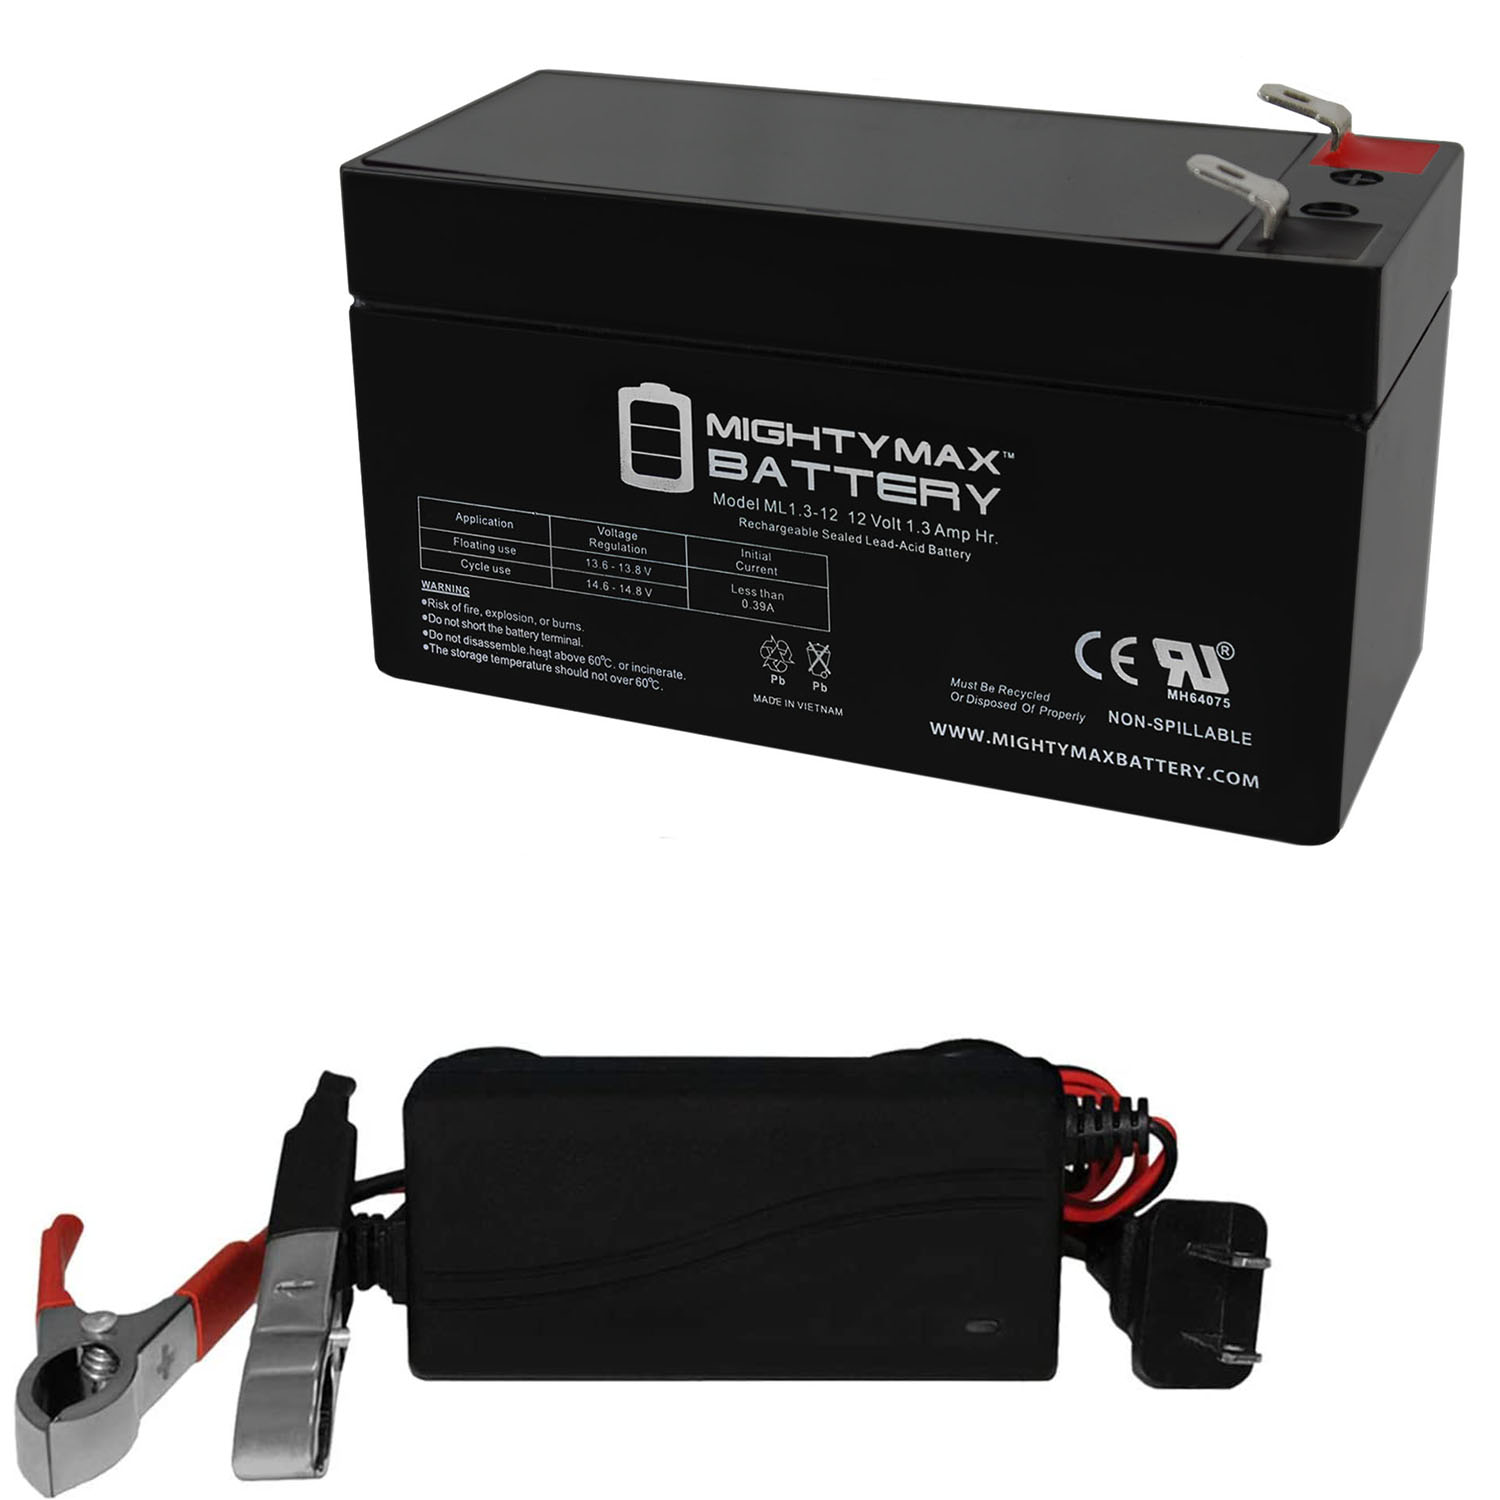 ML1.3-12 - 12 VOLT 1.3 AH SLA BATTERY INCLUDES 12V CHARGER